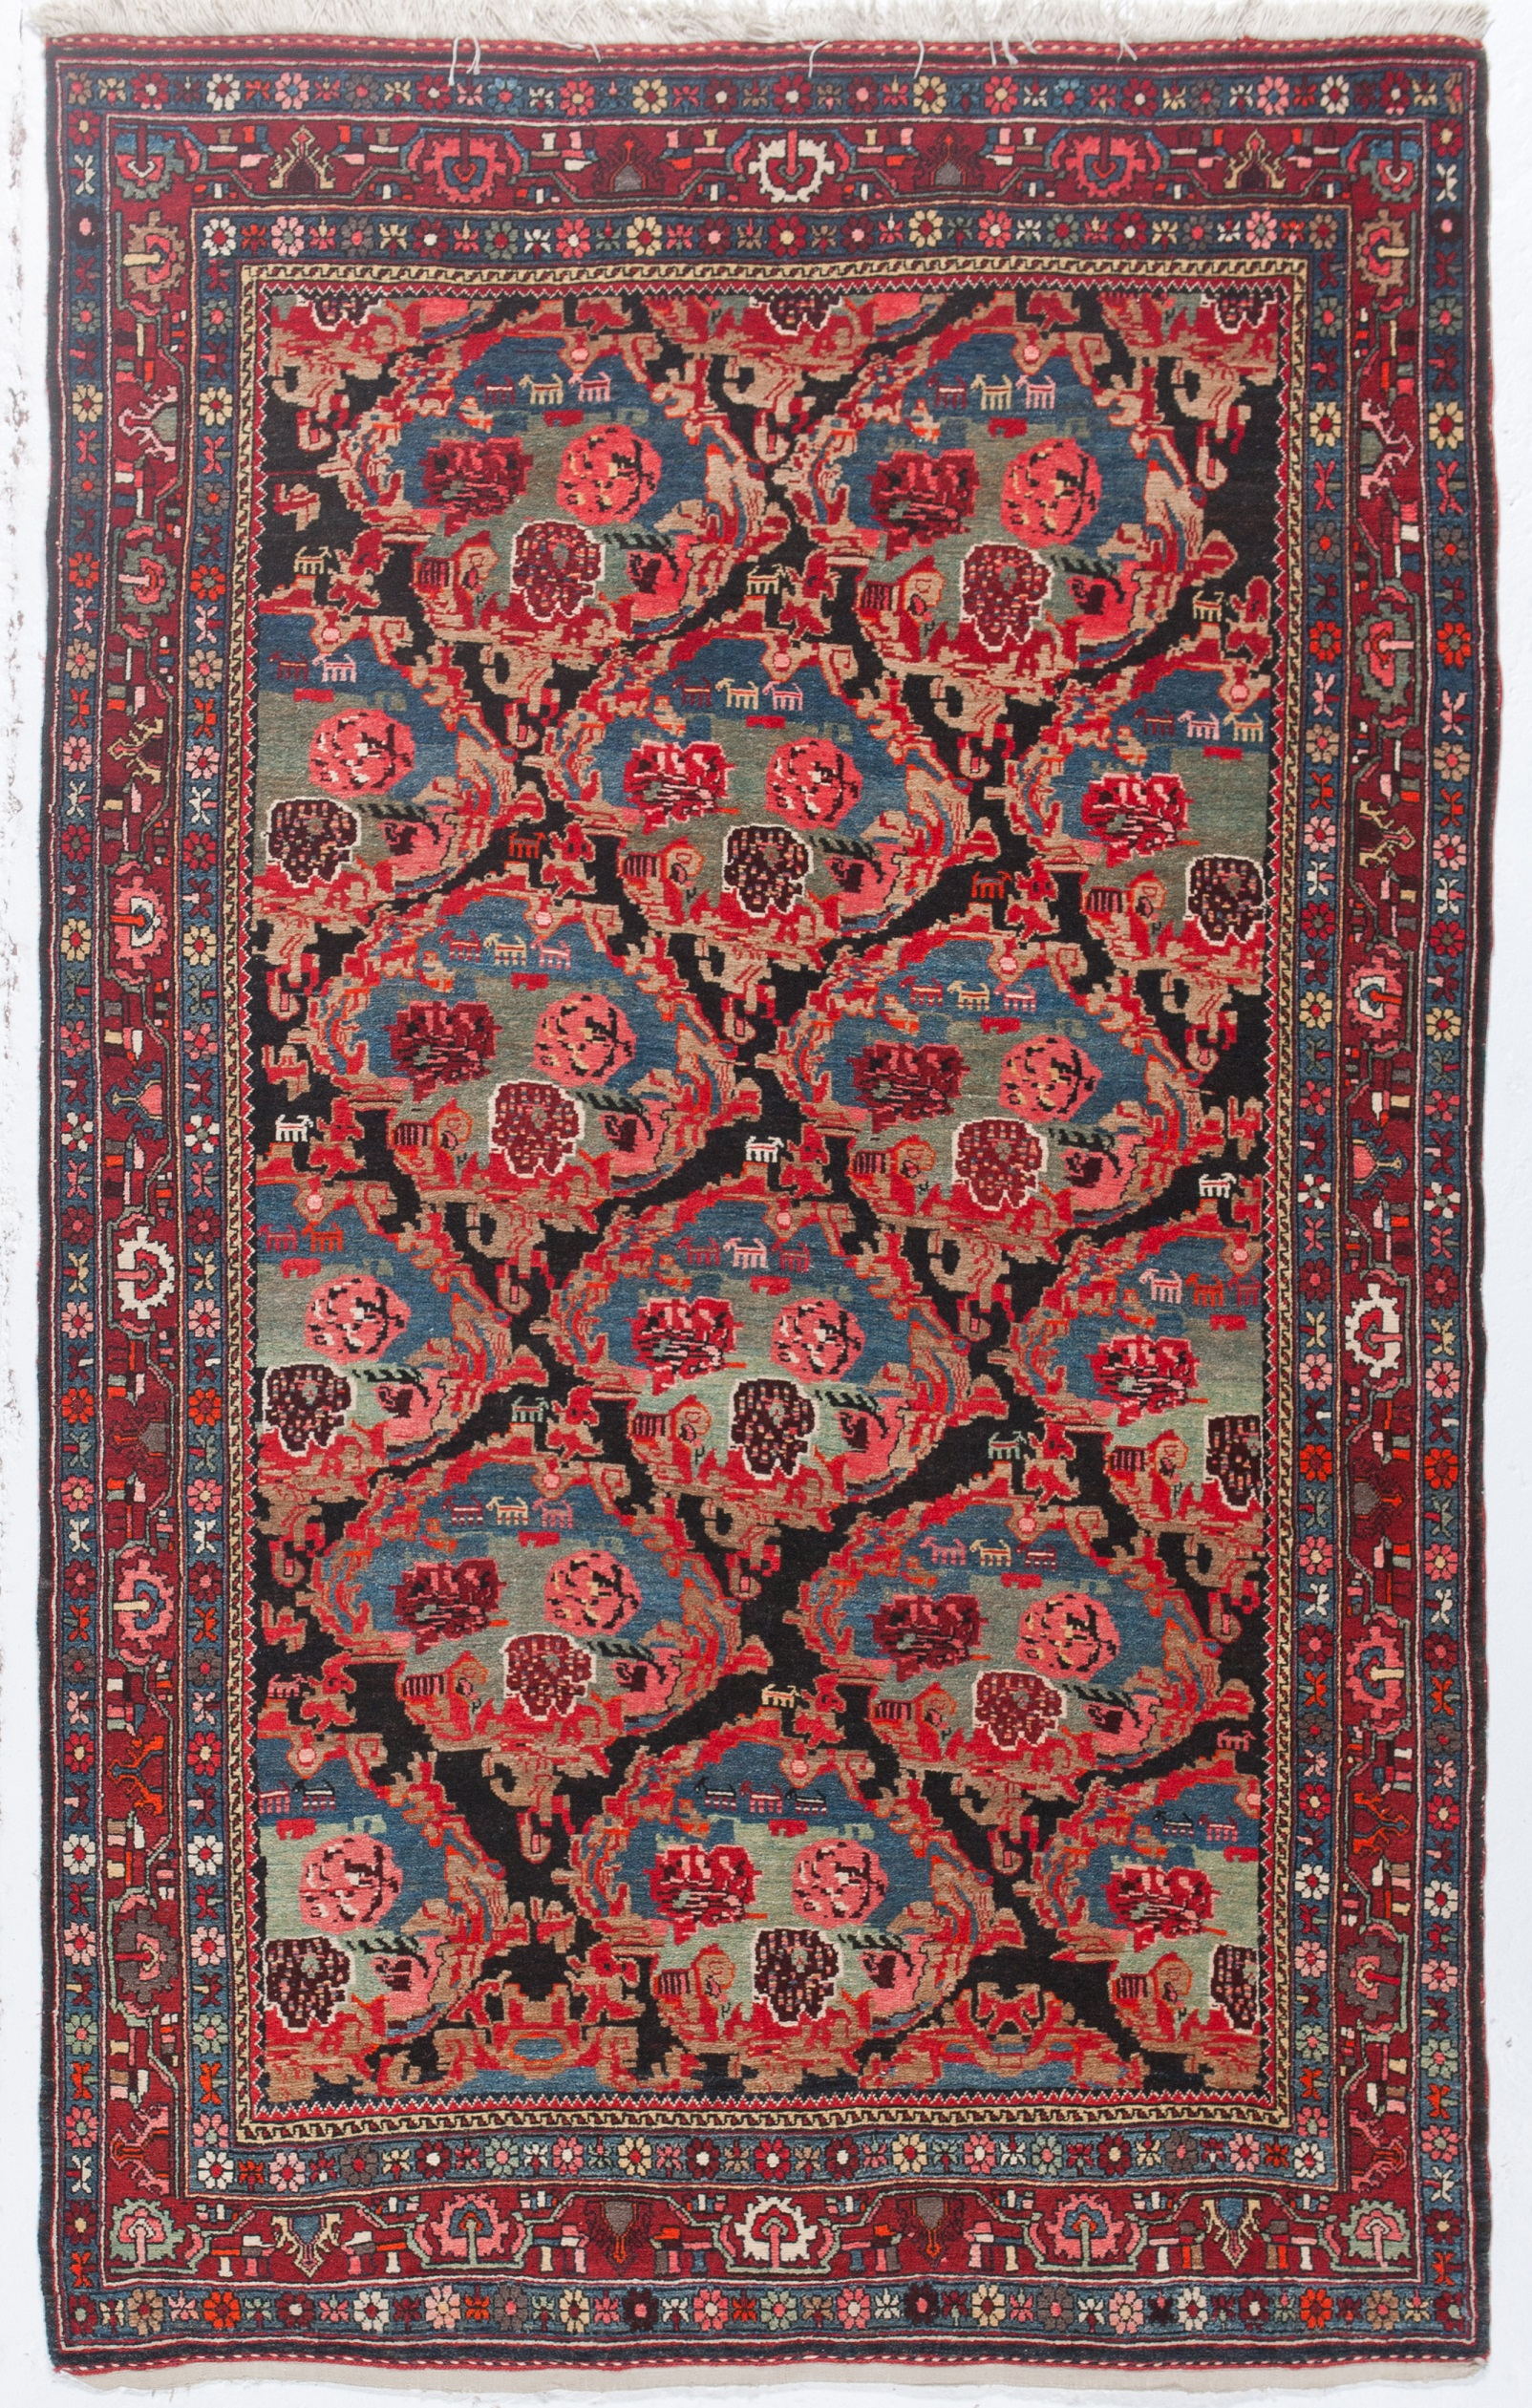 hip in gray itm rug the western area carpet purples blues blend life for cool dynamix rugs nicole designer to cotton designed mind collection home kenmare floral crisp and with are miller woman transitional brought